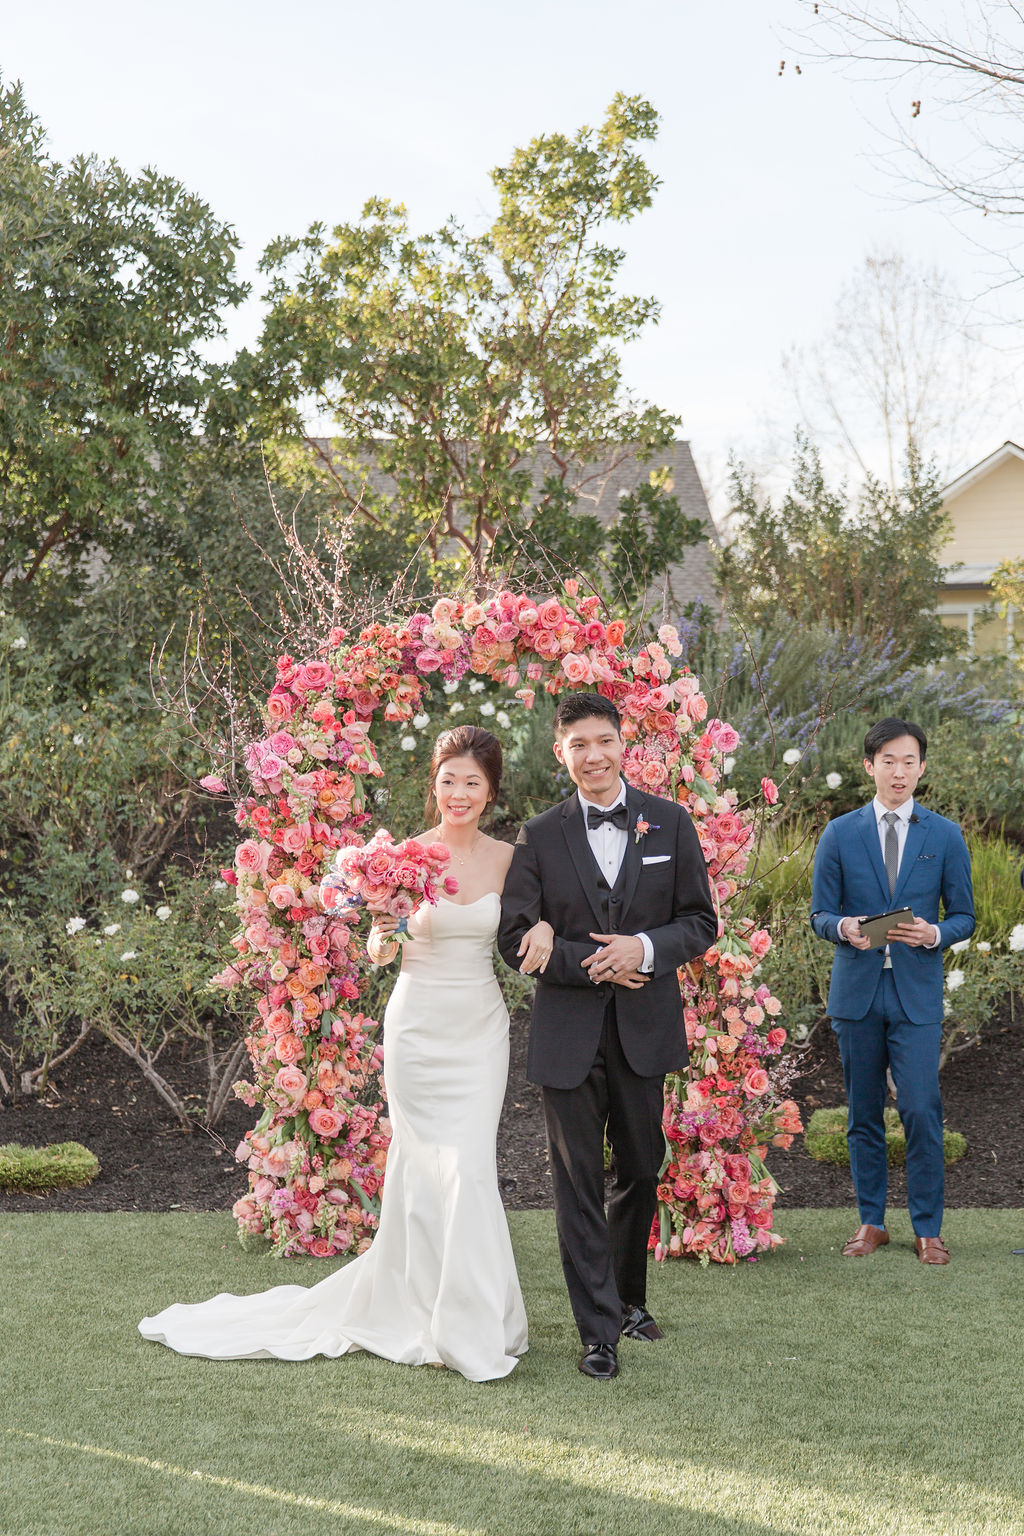 couple arm in arm at ceremony in front of floral pink arch